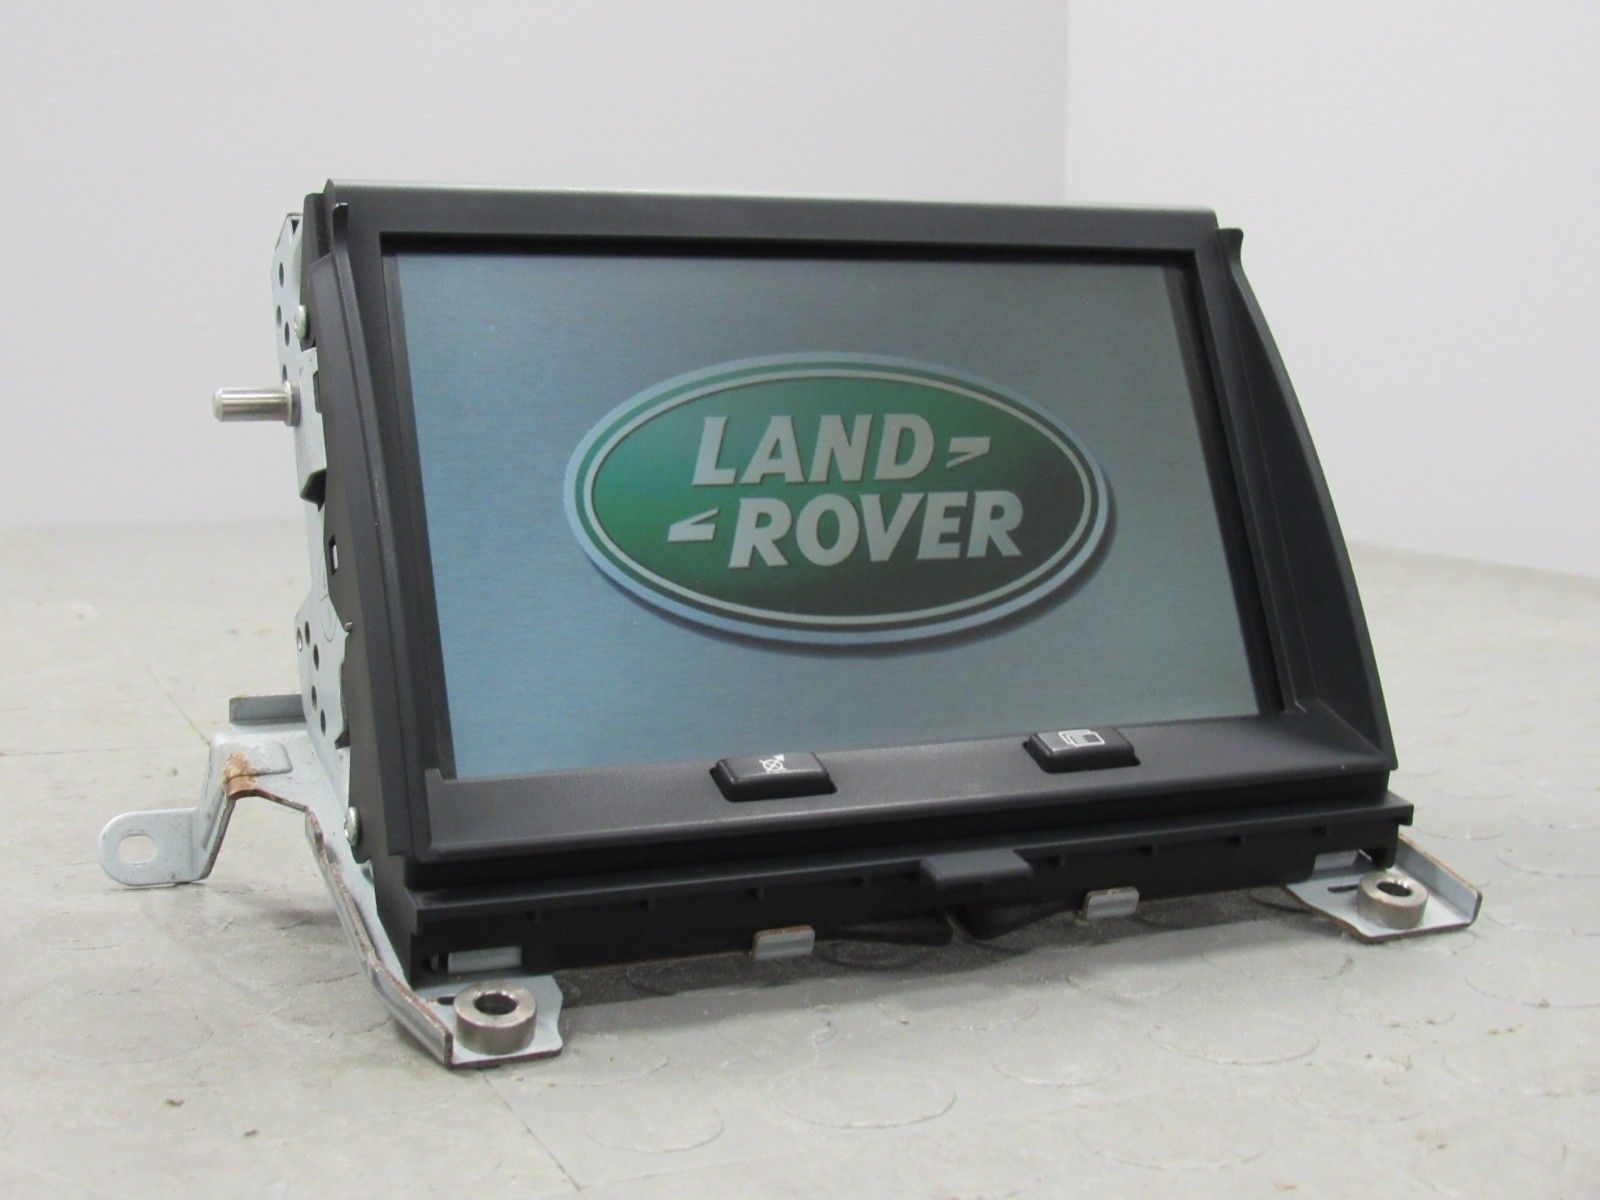 05 09 land rover lr3 range rover sport navigation display screen yie500081pvj a importapart. Black Bedroom Furniture Sets. Home Design Ideas